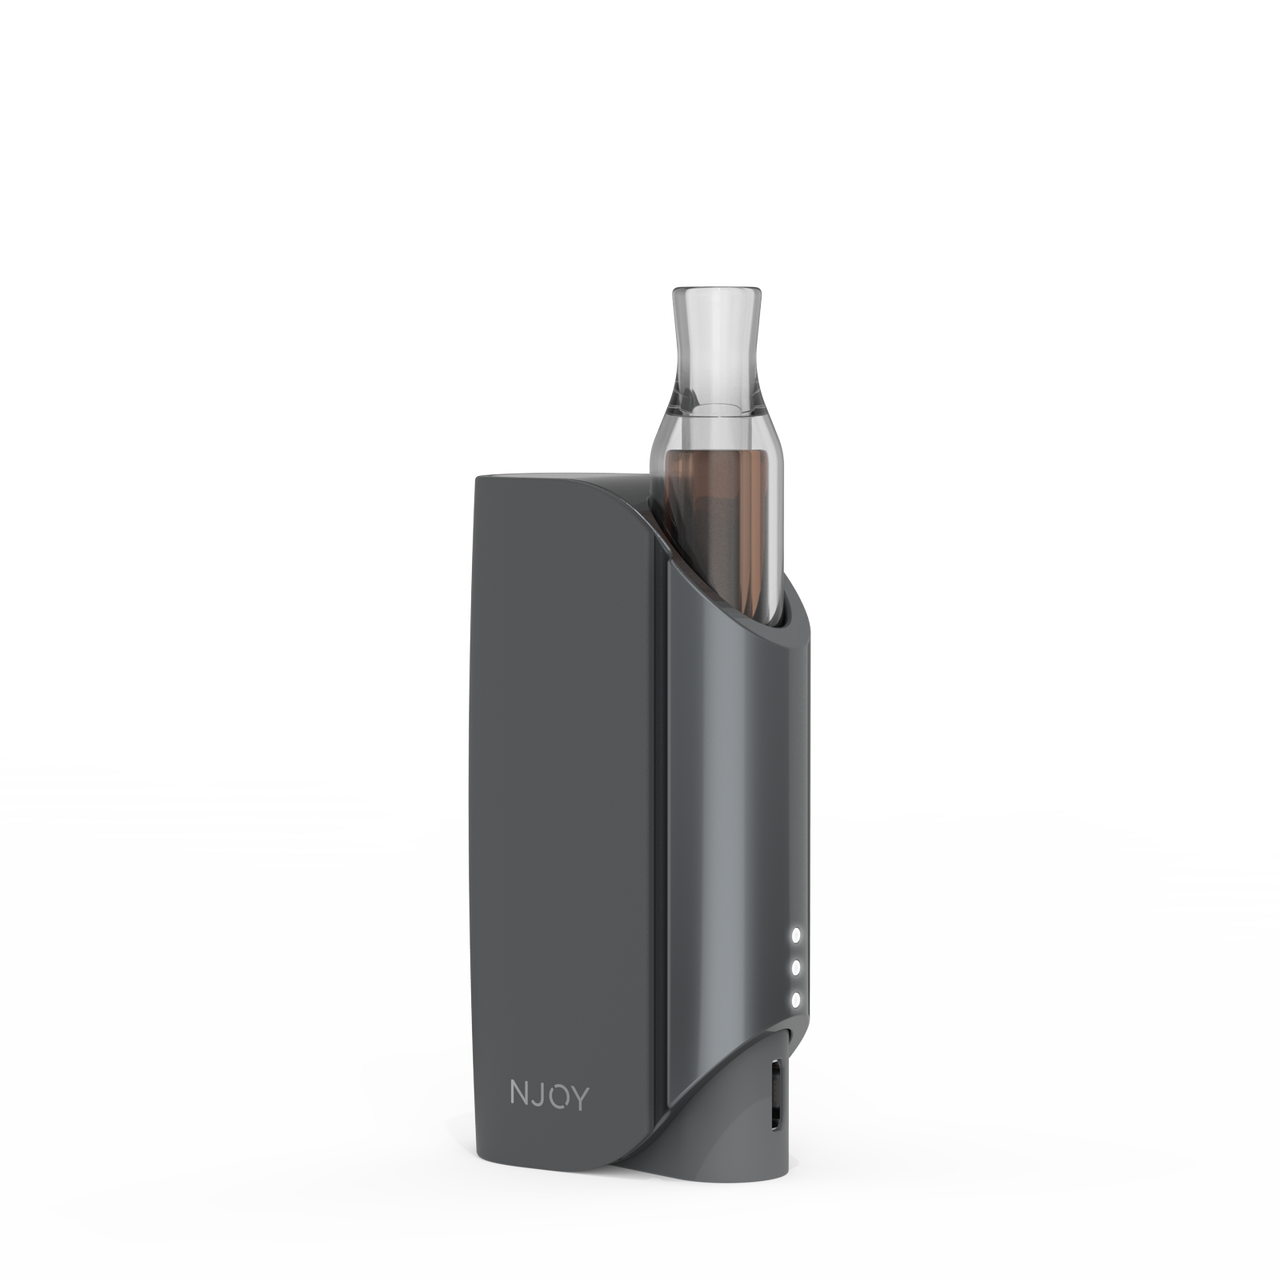 NJOY Convenience Vaping Compact Battery